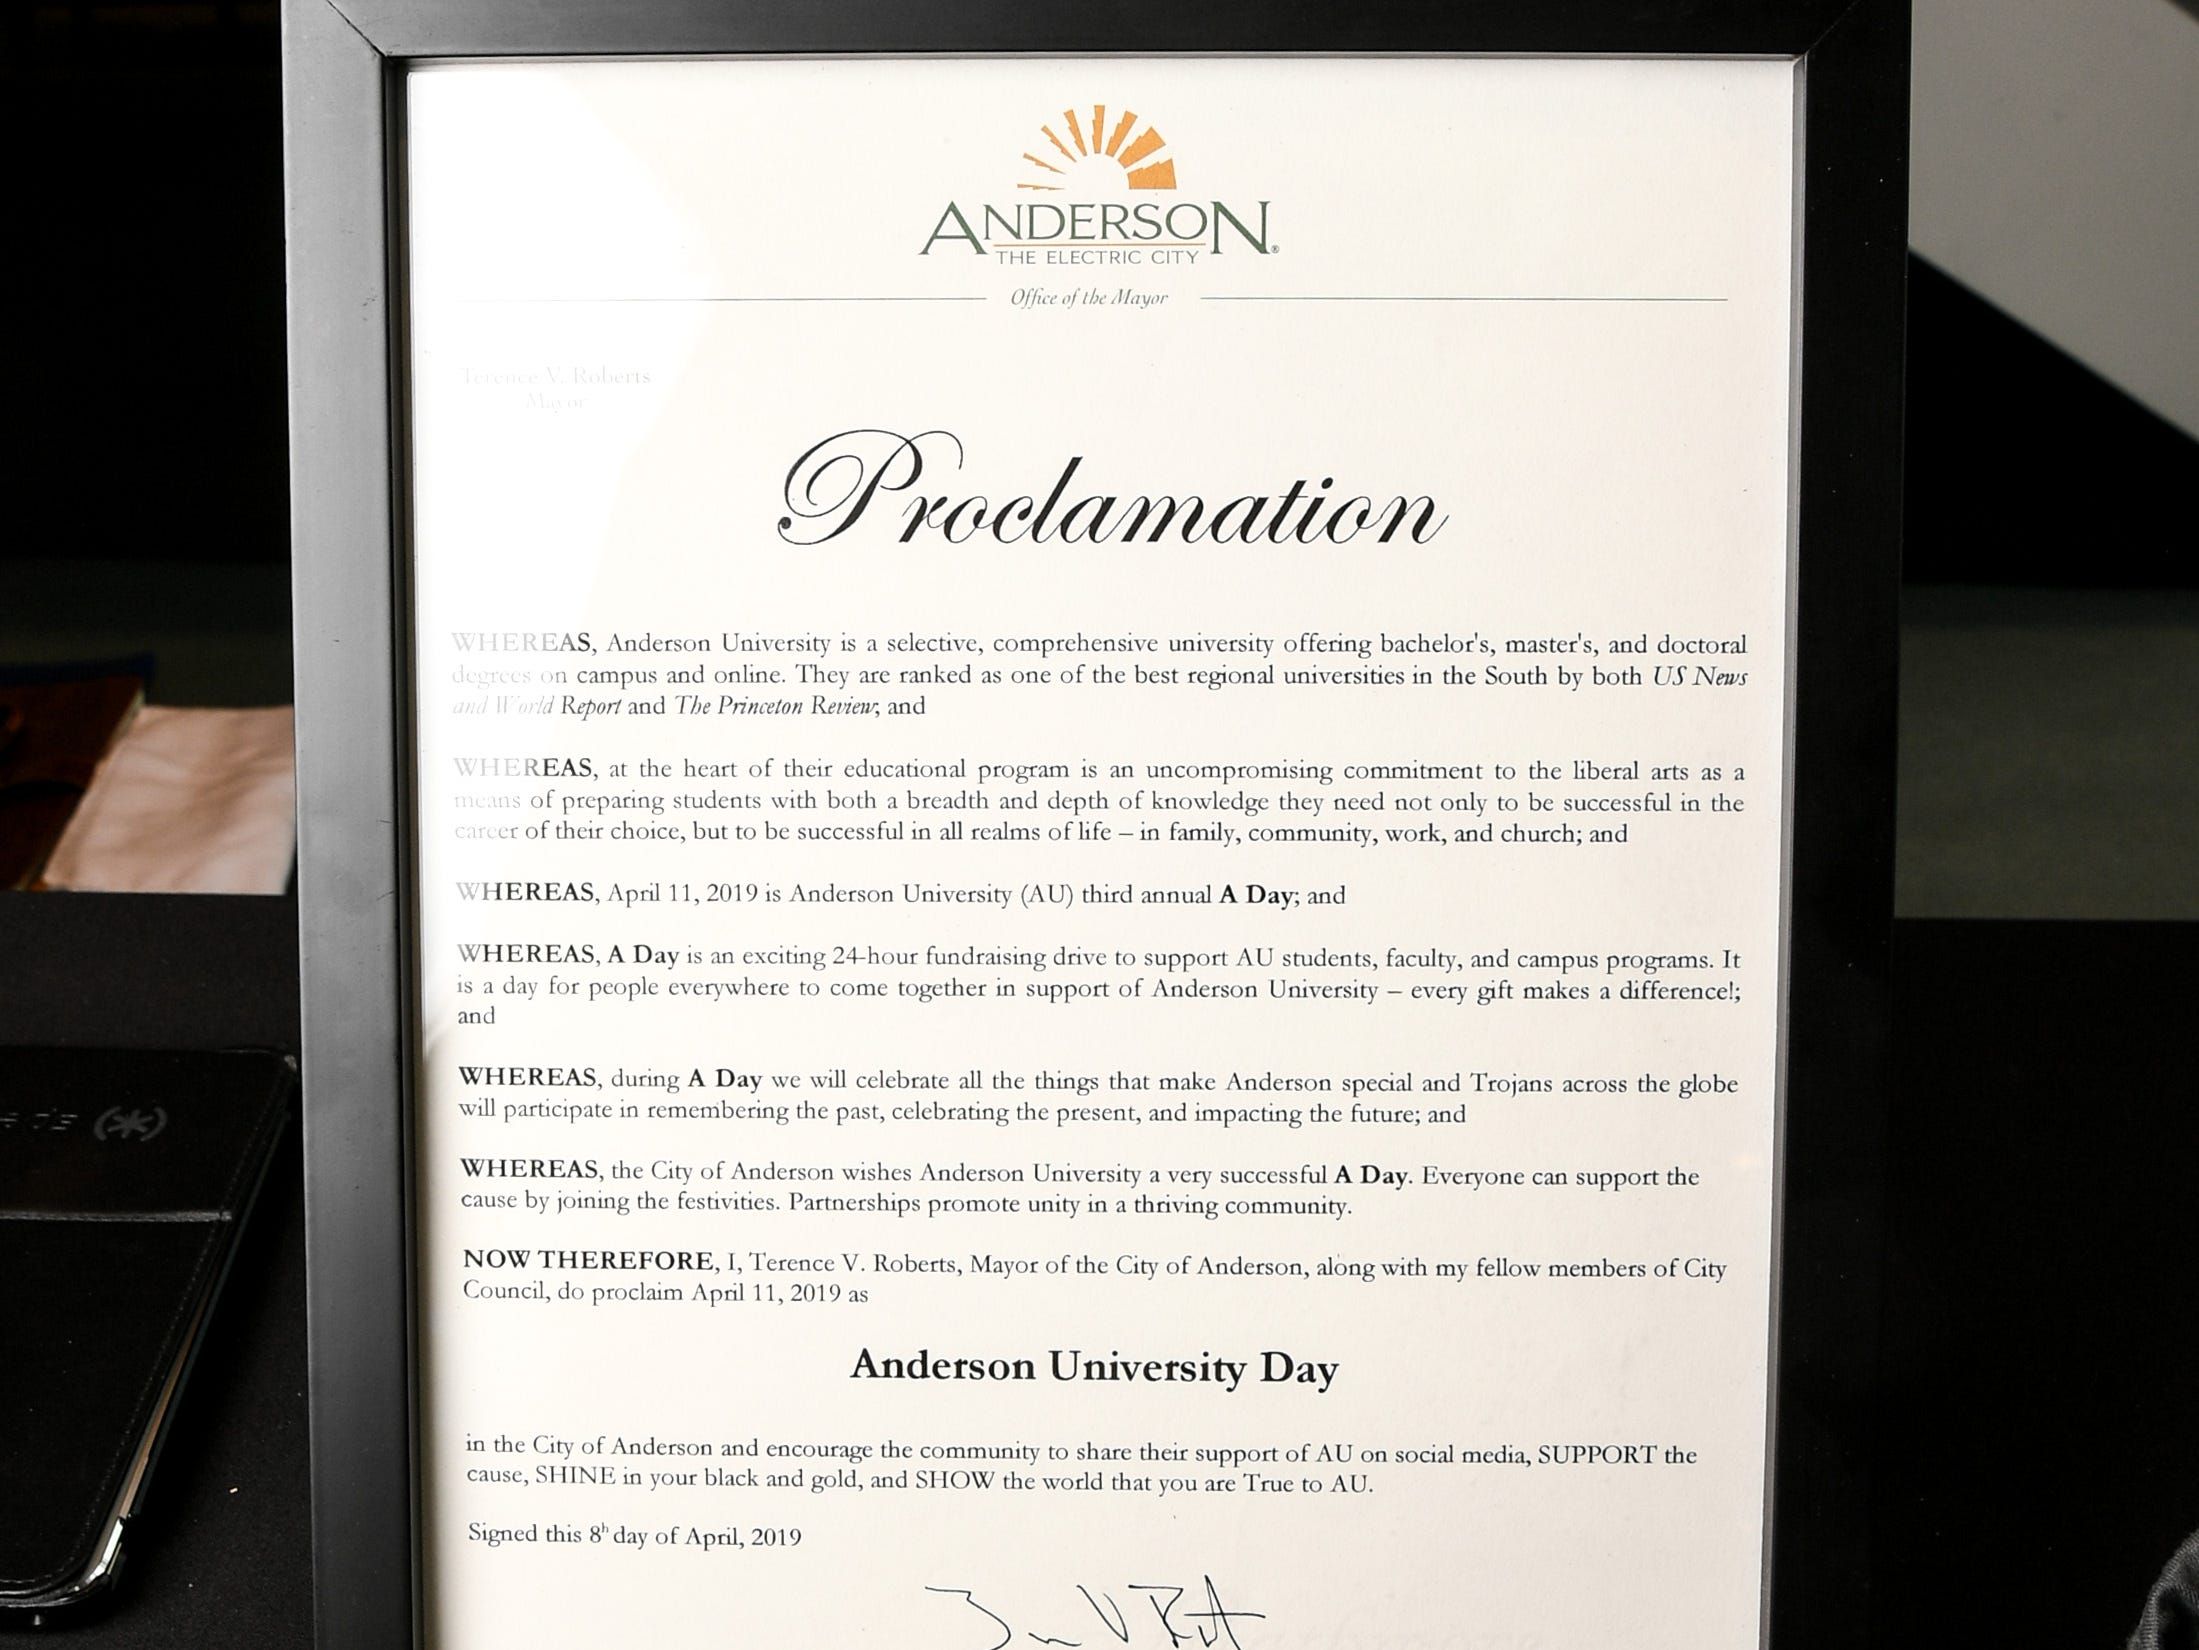 An Anderson Mayor Terence Roberts proclamation for A Day to Give, at a table inside the G. Ross Anderson Student Center, during A Day to Give at Anderson University Thursday.  The 24-hour fundraising drive event is meant to give people from the school a chance to participate in events on campus to recognize the past, present, and future.